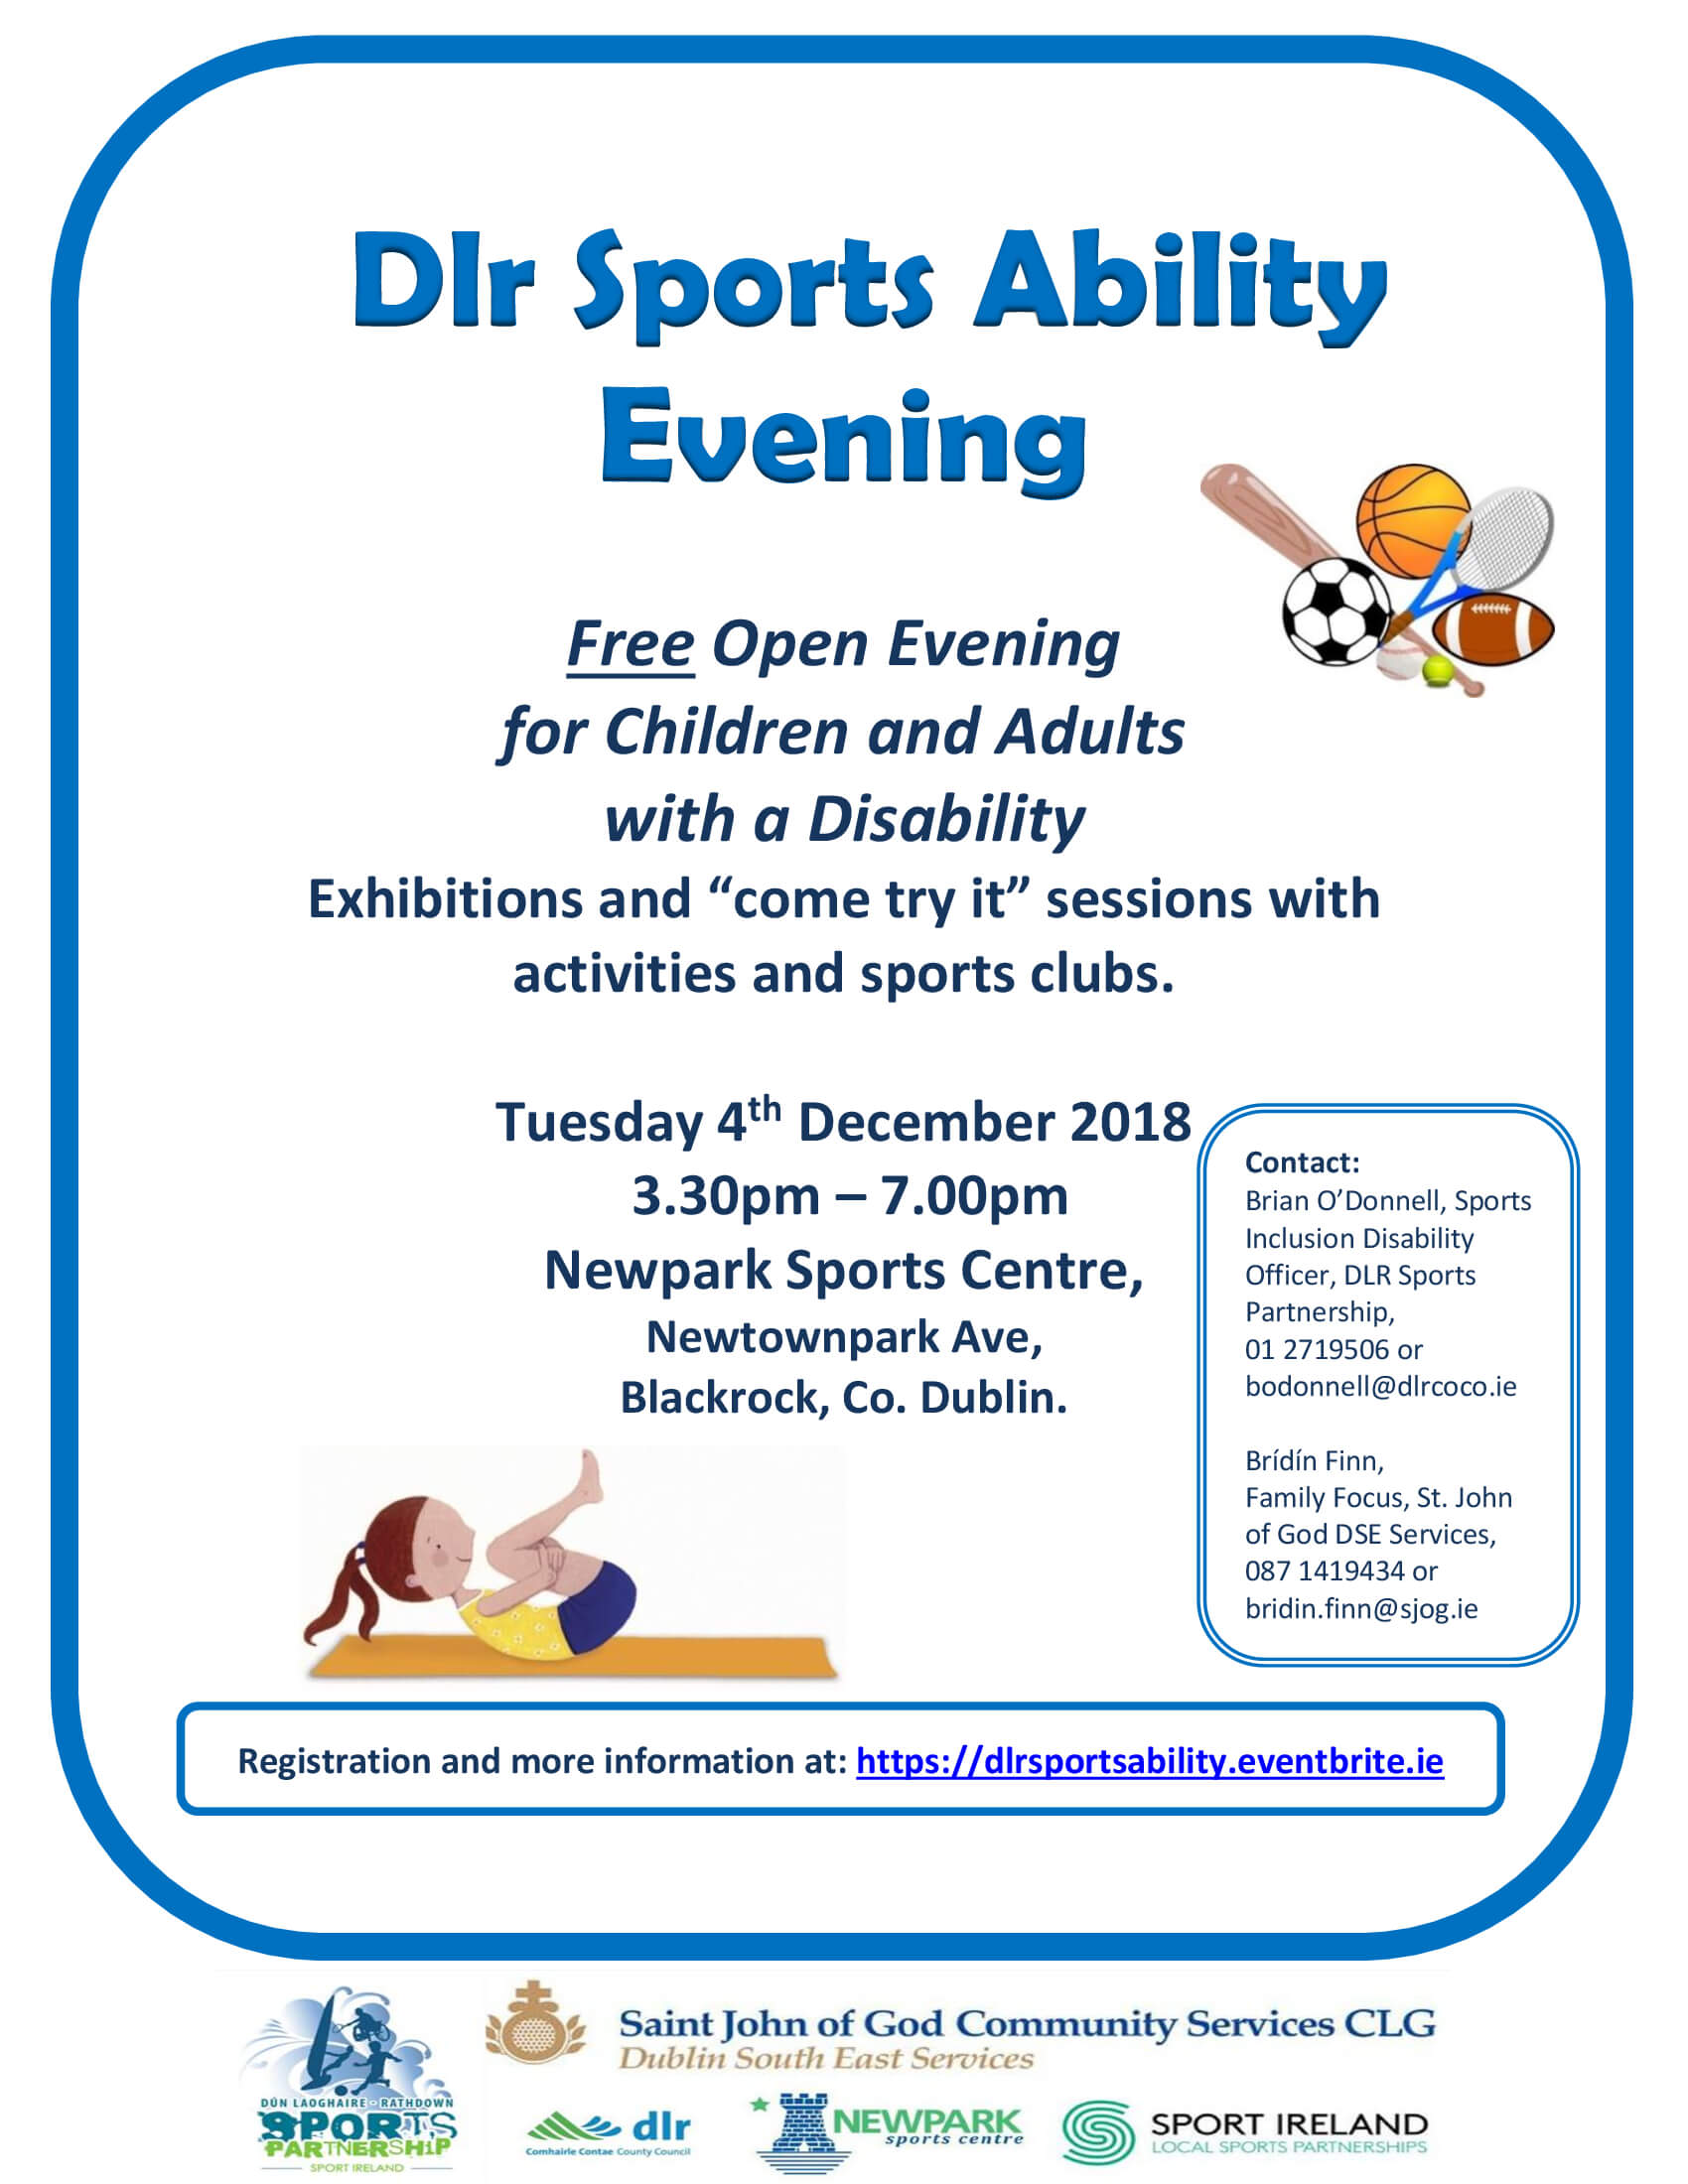 Dlr Sports Ability Evening Flyer small jpeg